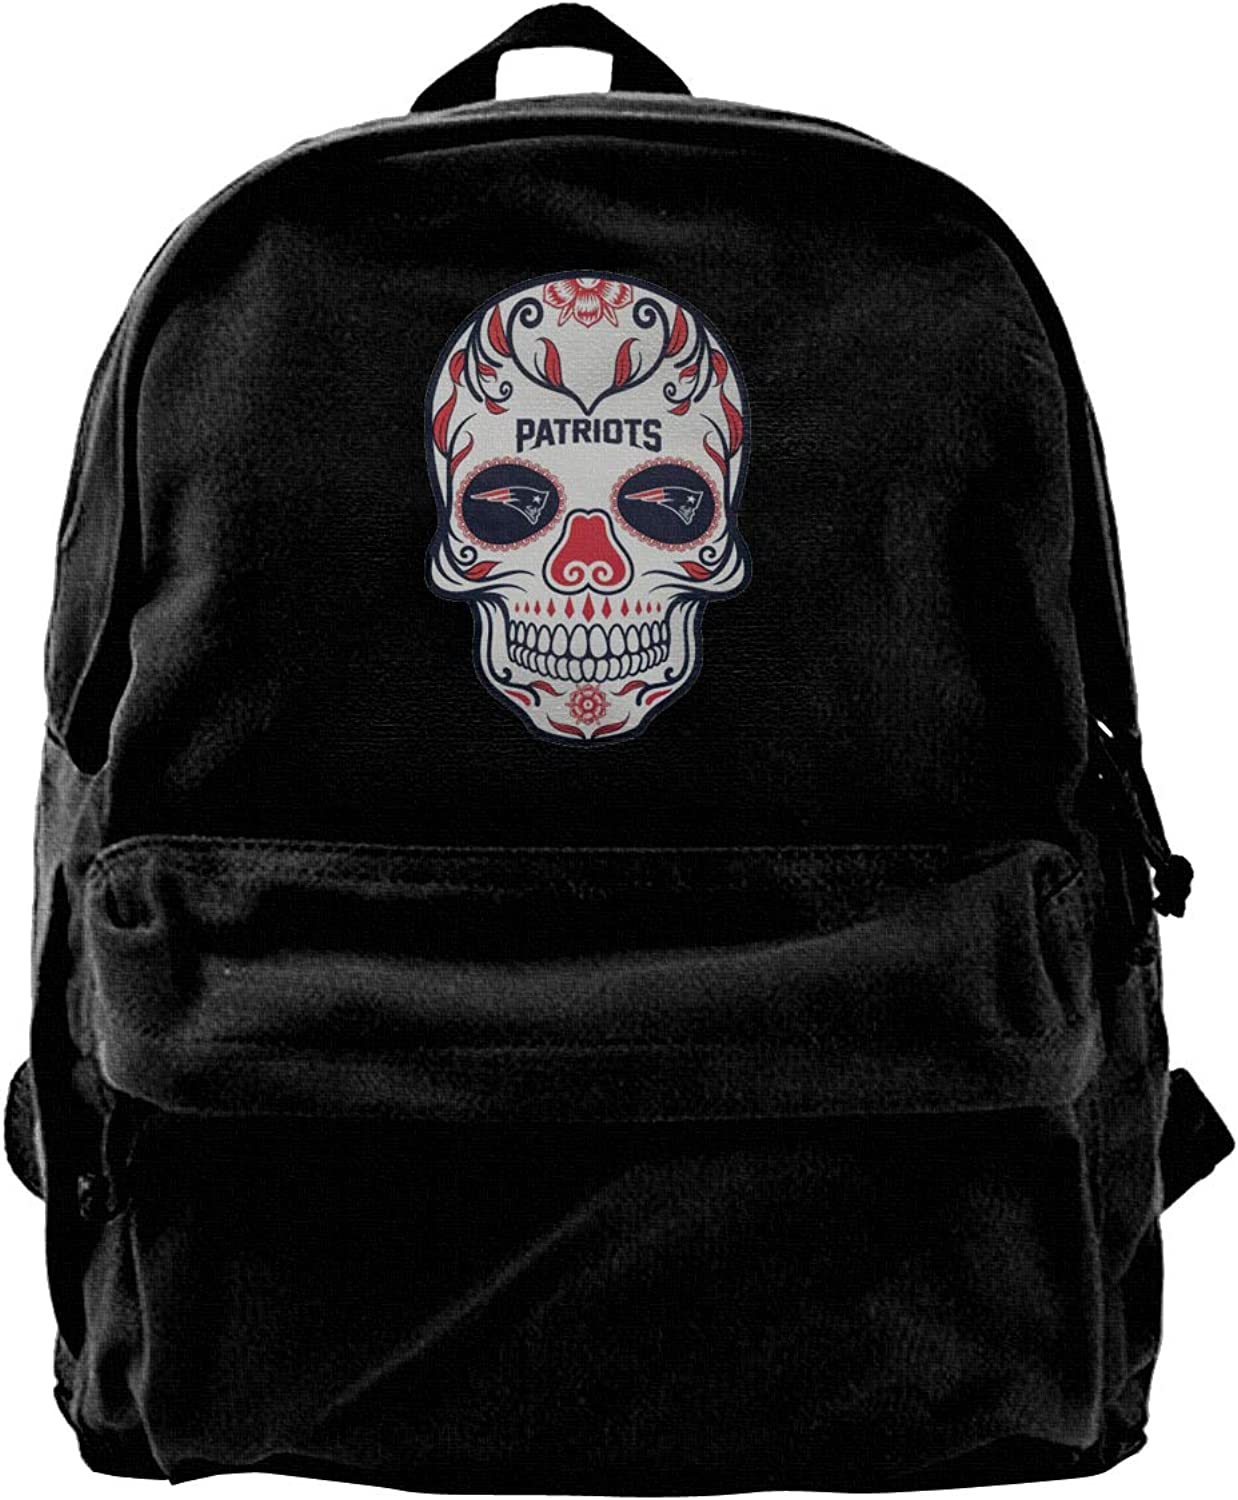 672501f04d0c Backpack New-England-Patriots 14 Inch Laptop Casual School College ...